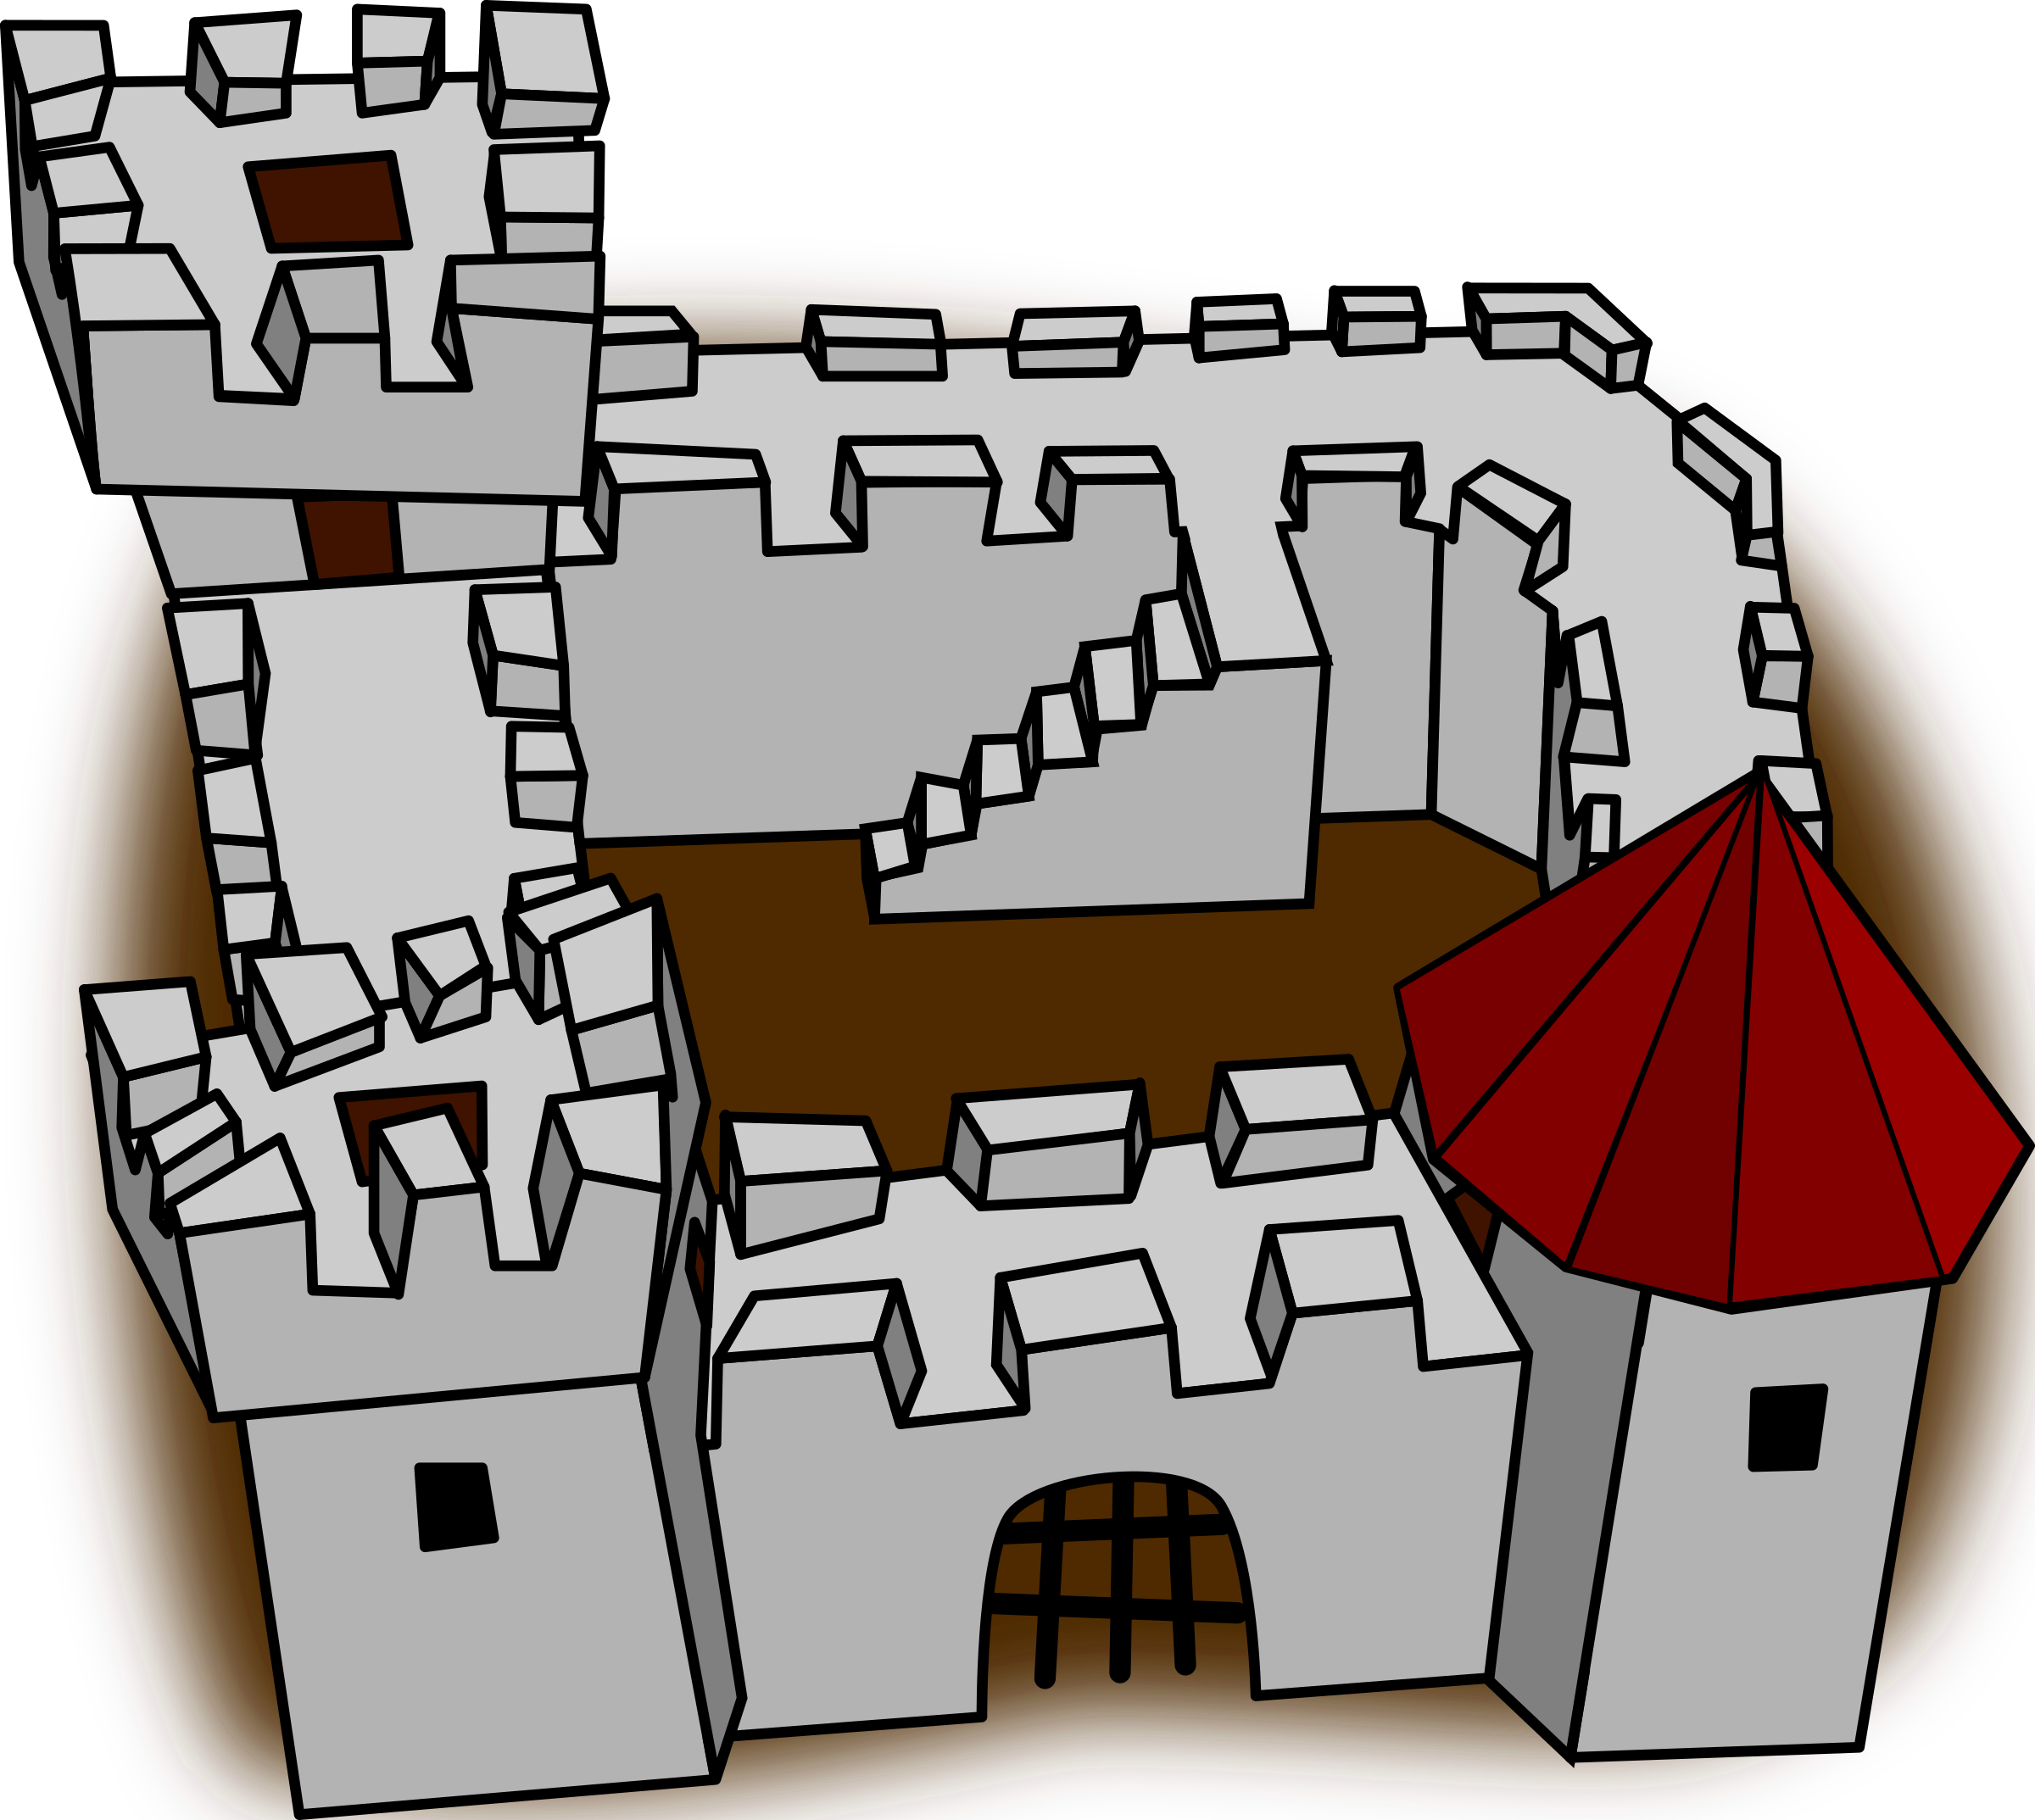 Palace clipart fort. Cartoon comic fortress stronghold